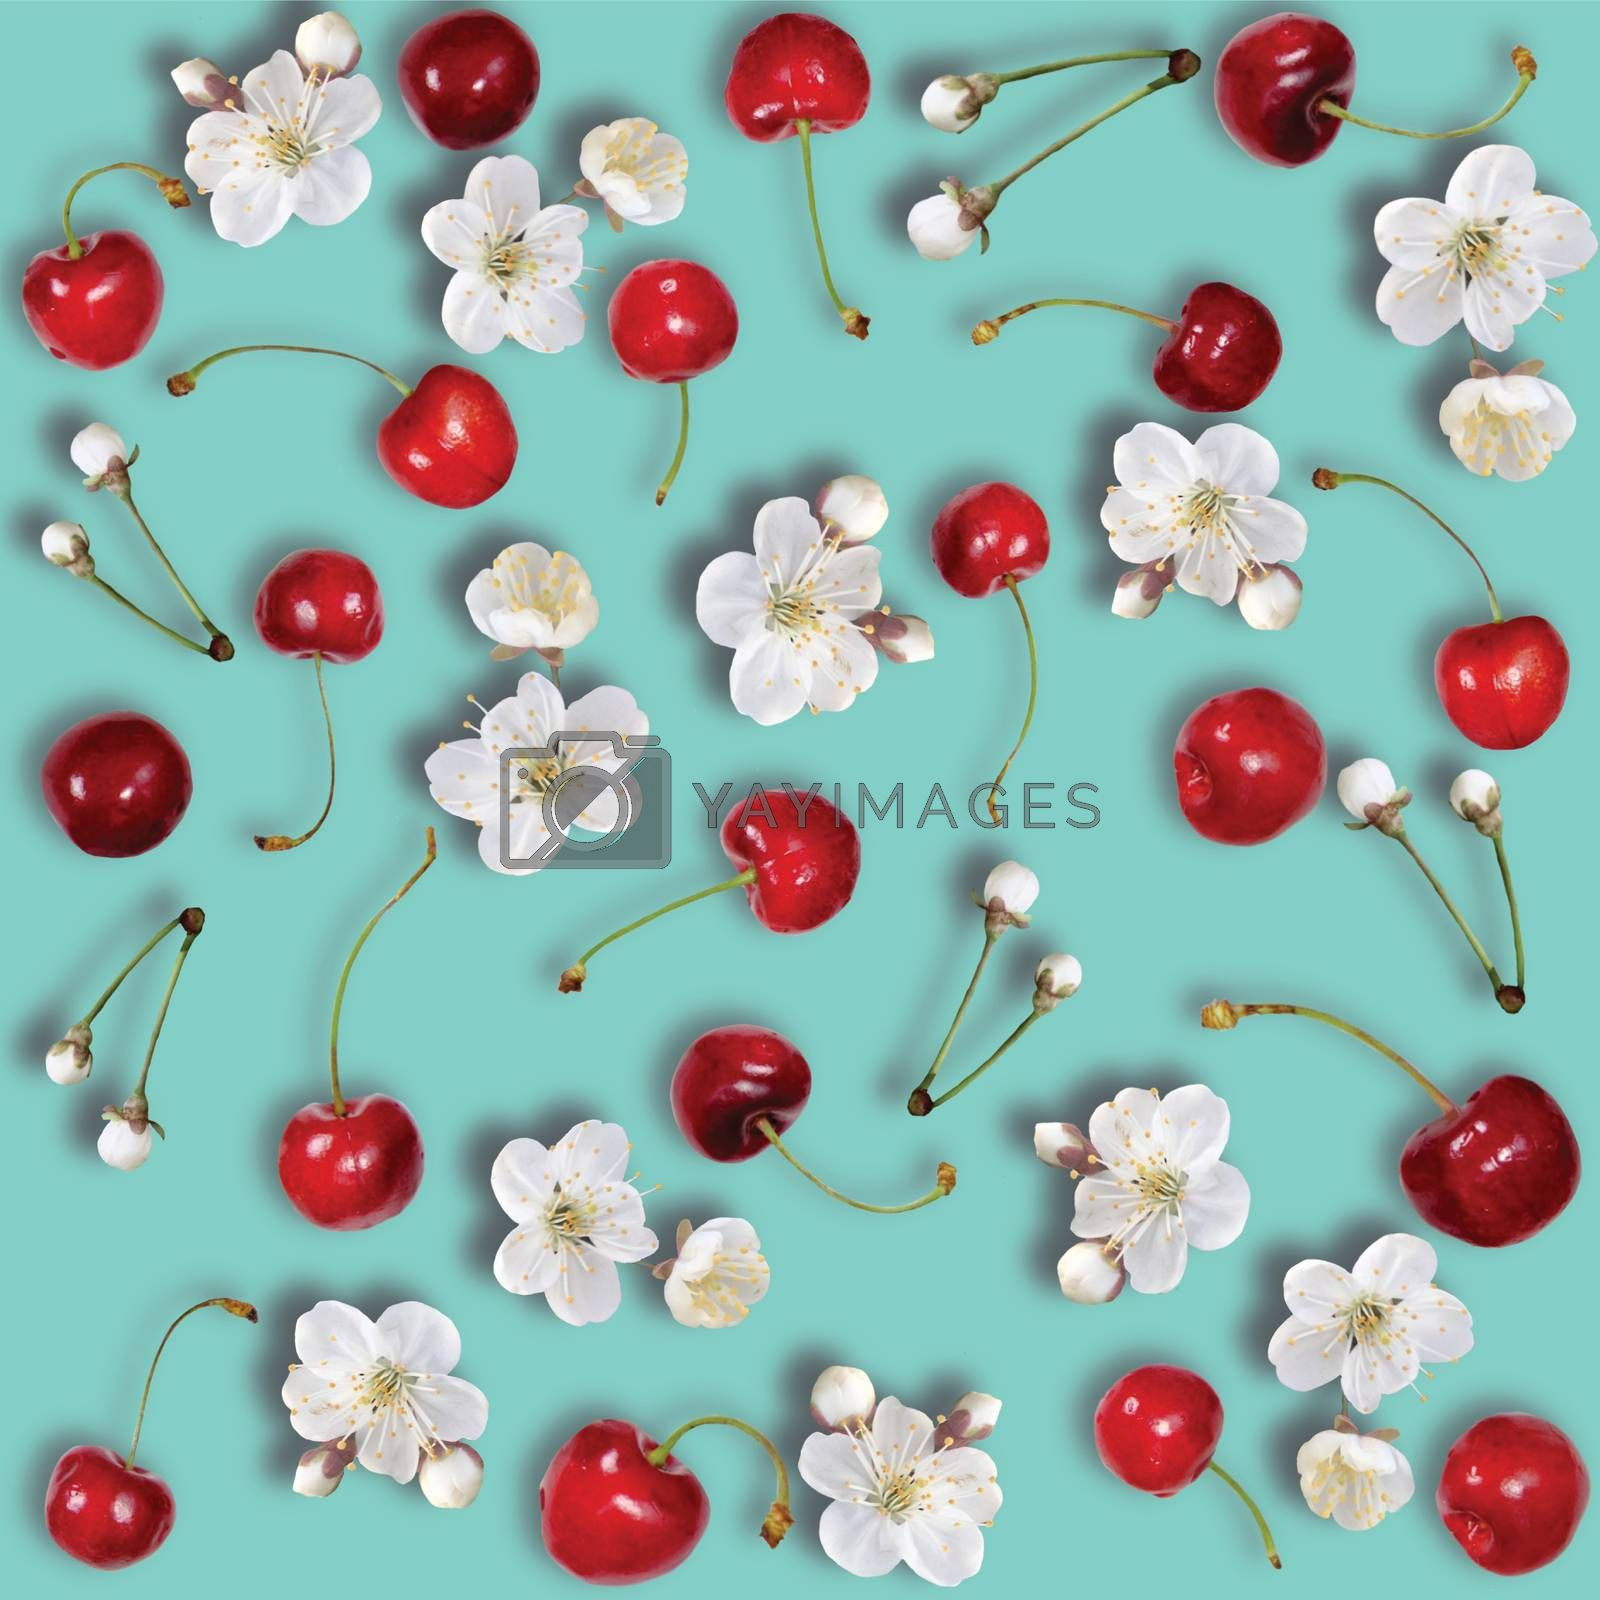 Fresh cherries with stems and blossom background. Creative beautiful red ripe cherries and cherry blossom summer berries pattern. Top view